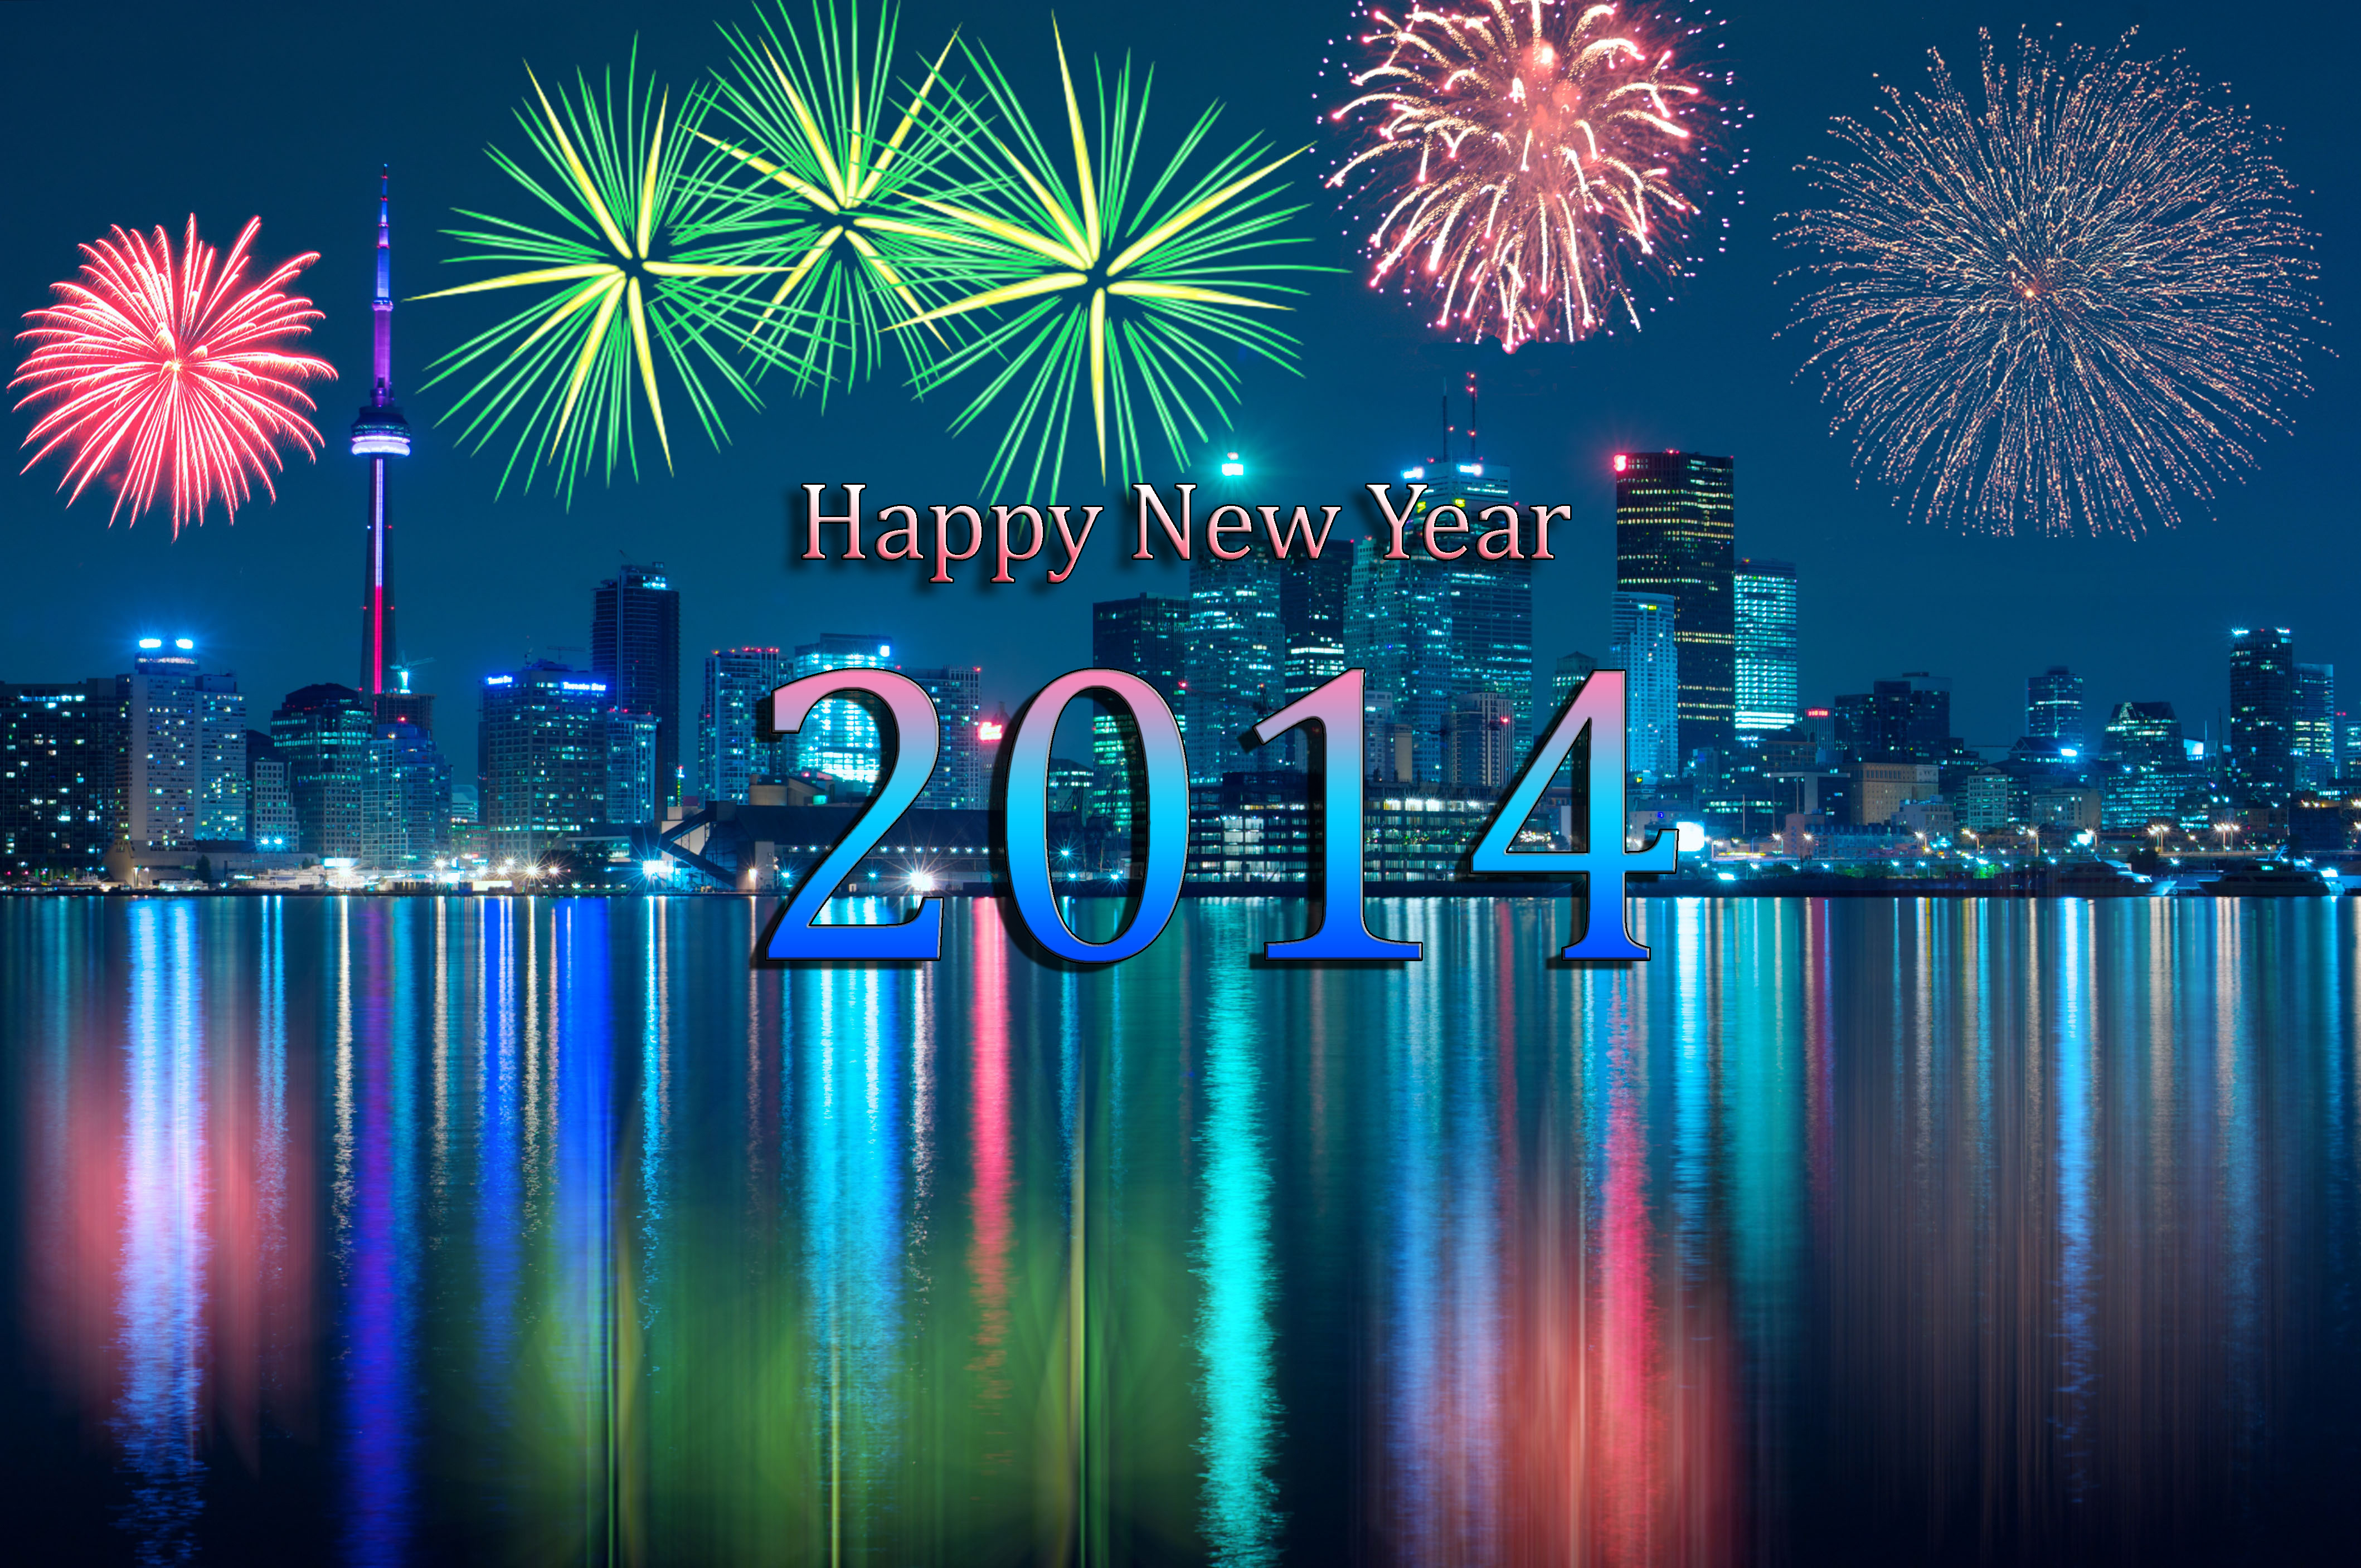 Happy New Year 2014  Wallpaper Canadian Bhutanese 4236x2814